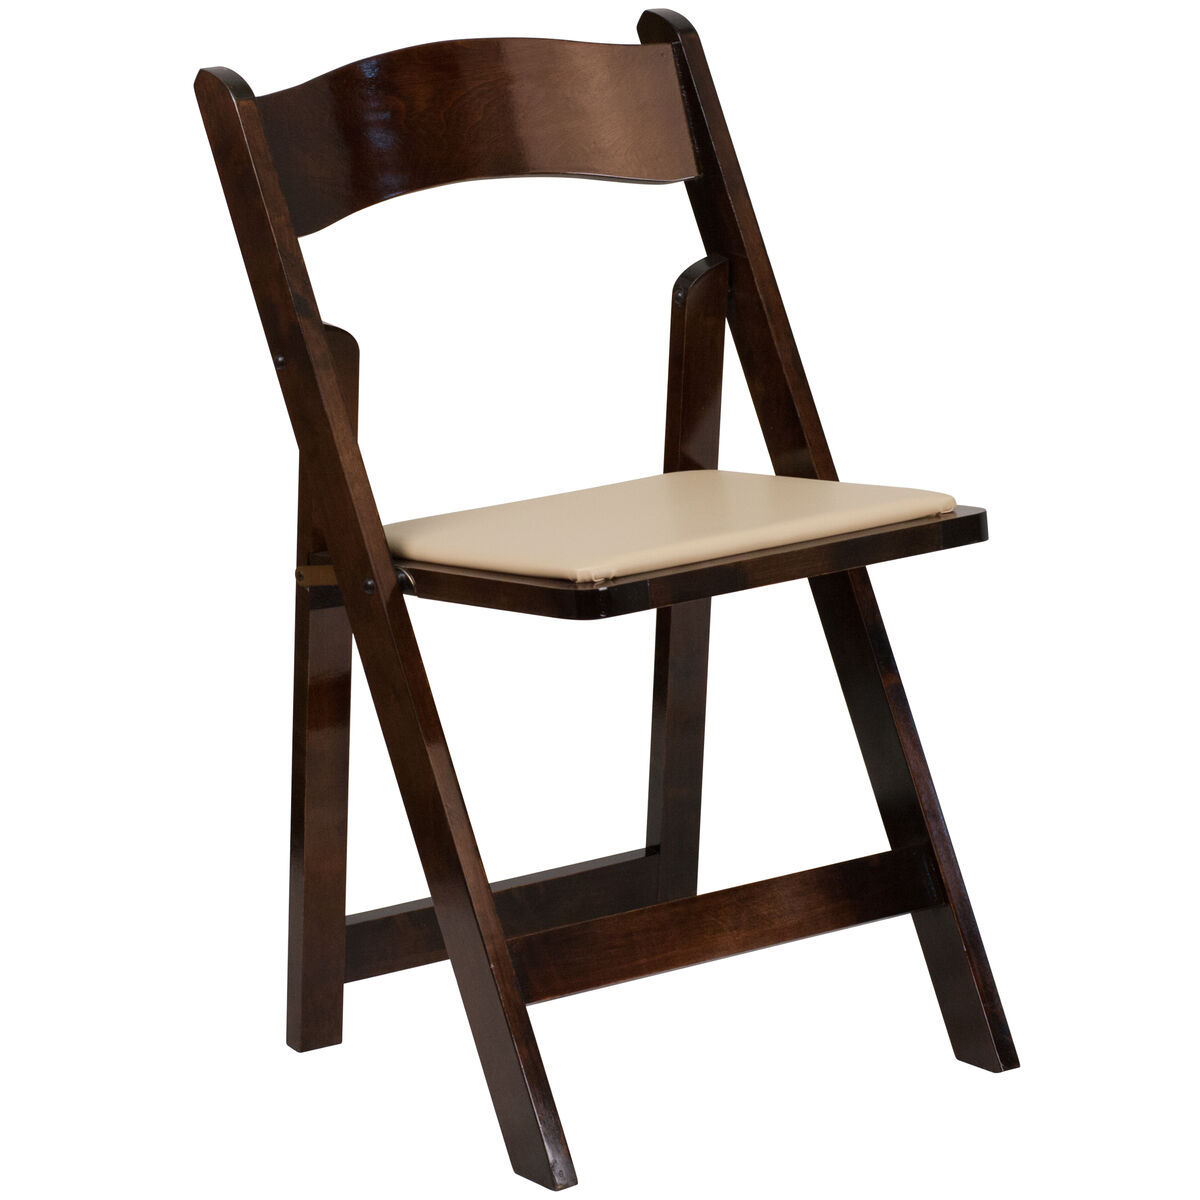 Fruitwood Folding Chair Xf 2903 Fruit Wood Gg Bizchair Com